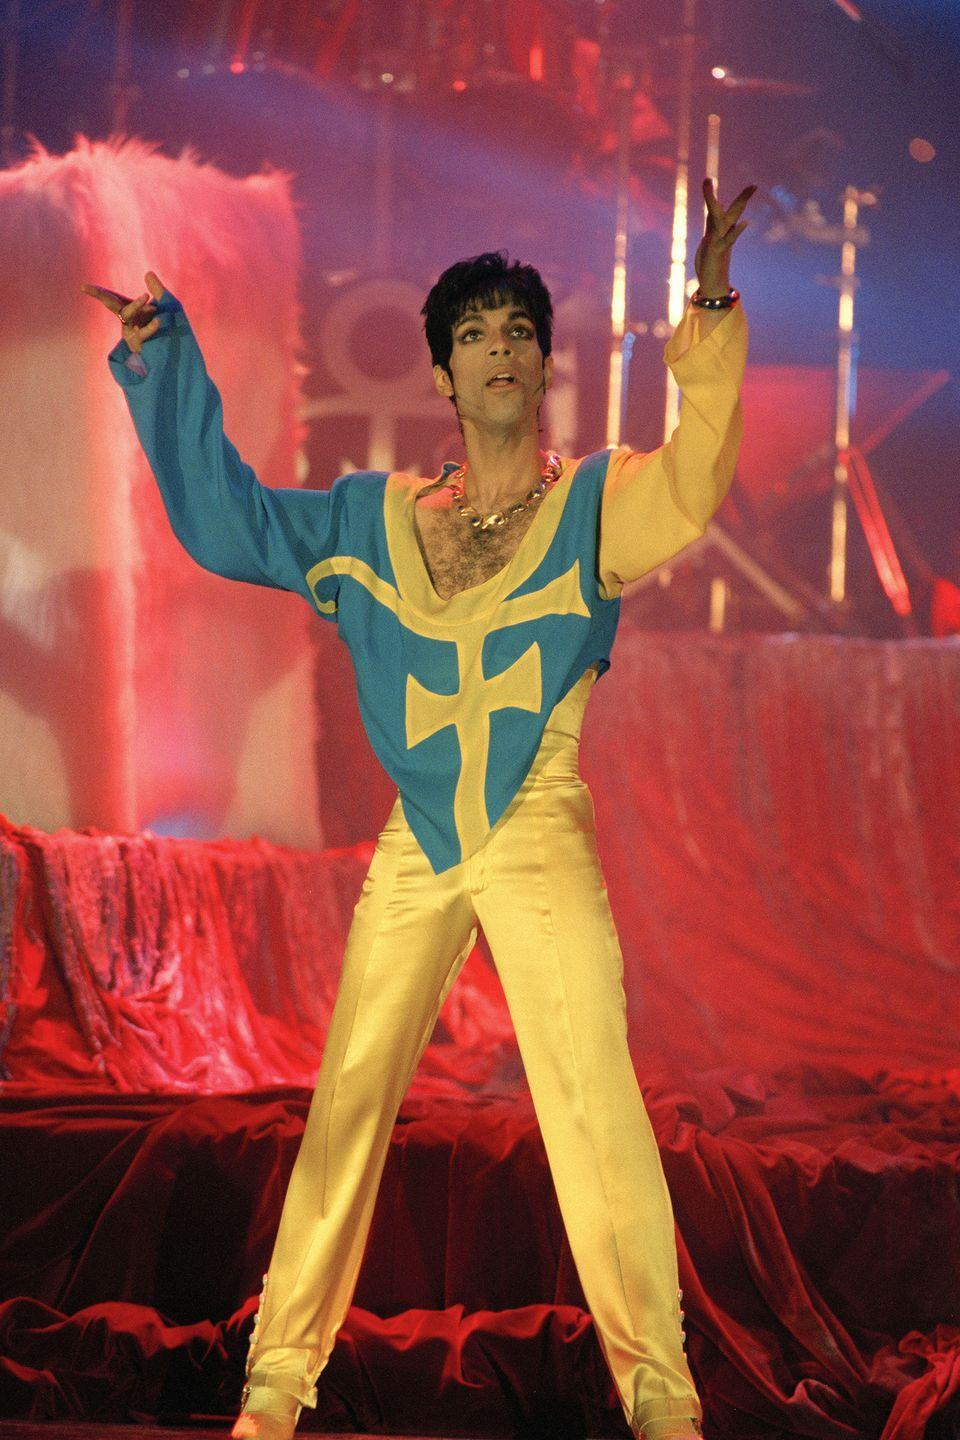 <p>Prince performing during the World Music Awards ceremony in Monaco</p>